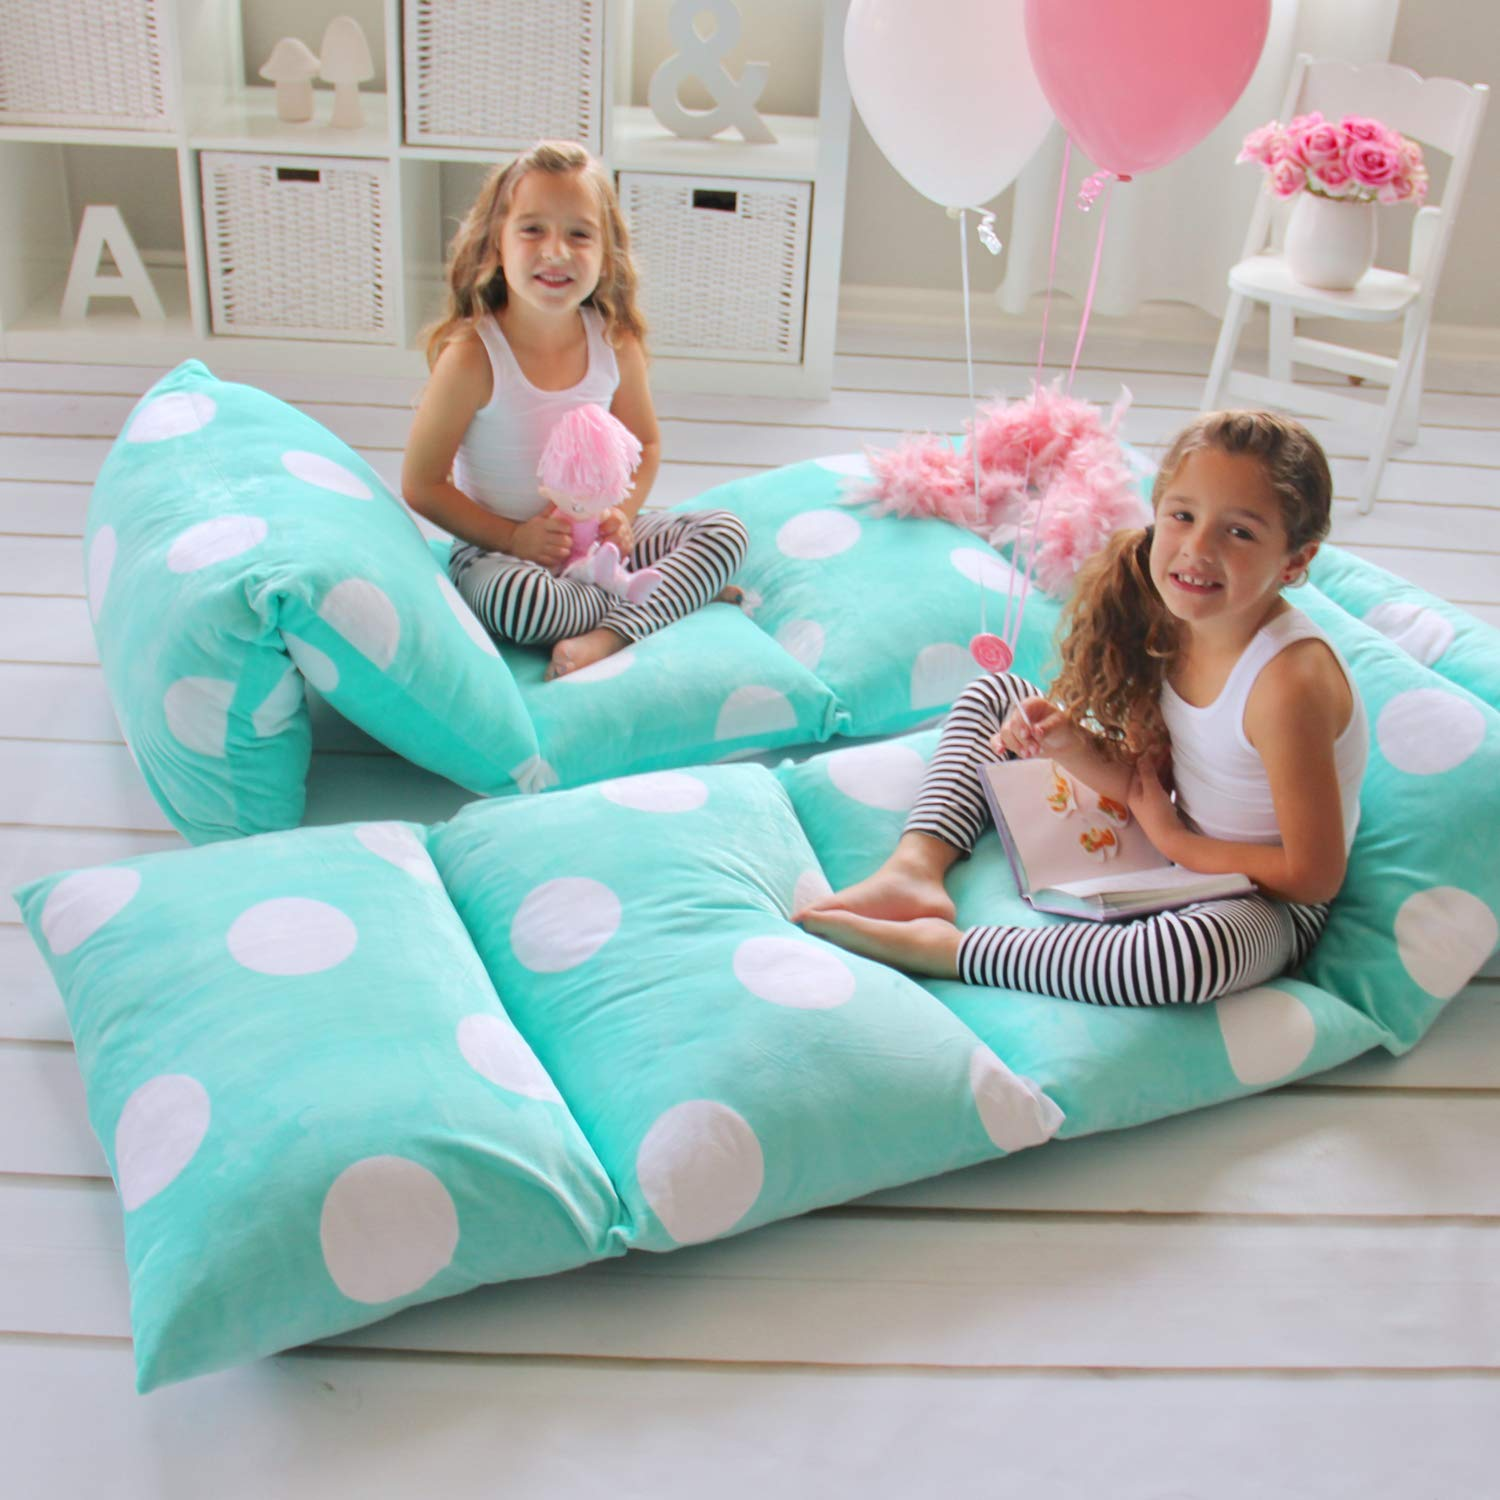 Butterfly Craze Girl's Floor Lounger Seats Cover and Pillow Cover Made of Super Soft